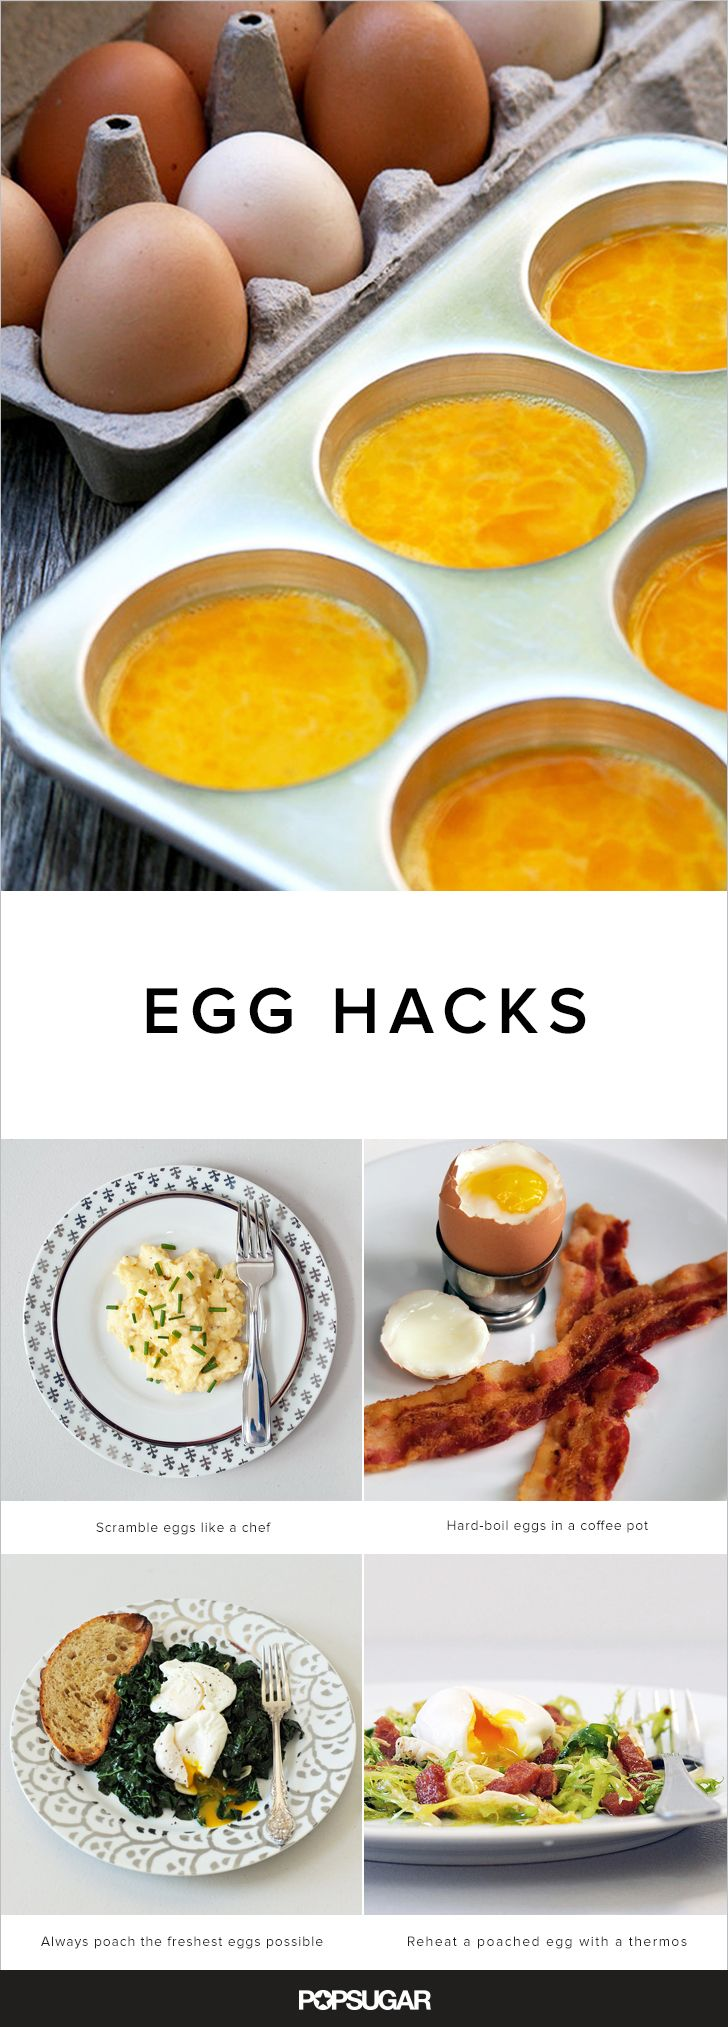 Eggs are a household staple, yet so misunderstood! From extending an egg's shelf-life to cooking a perfectly poached egg to discovering the easiest way to whip up eggs for a crowd, allow these 12 egg hacks to completely transform the way you handle this key ingredient.